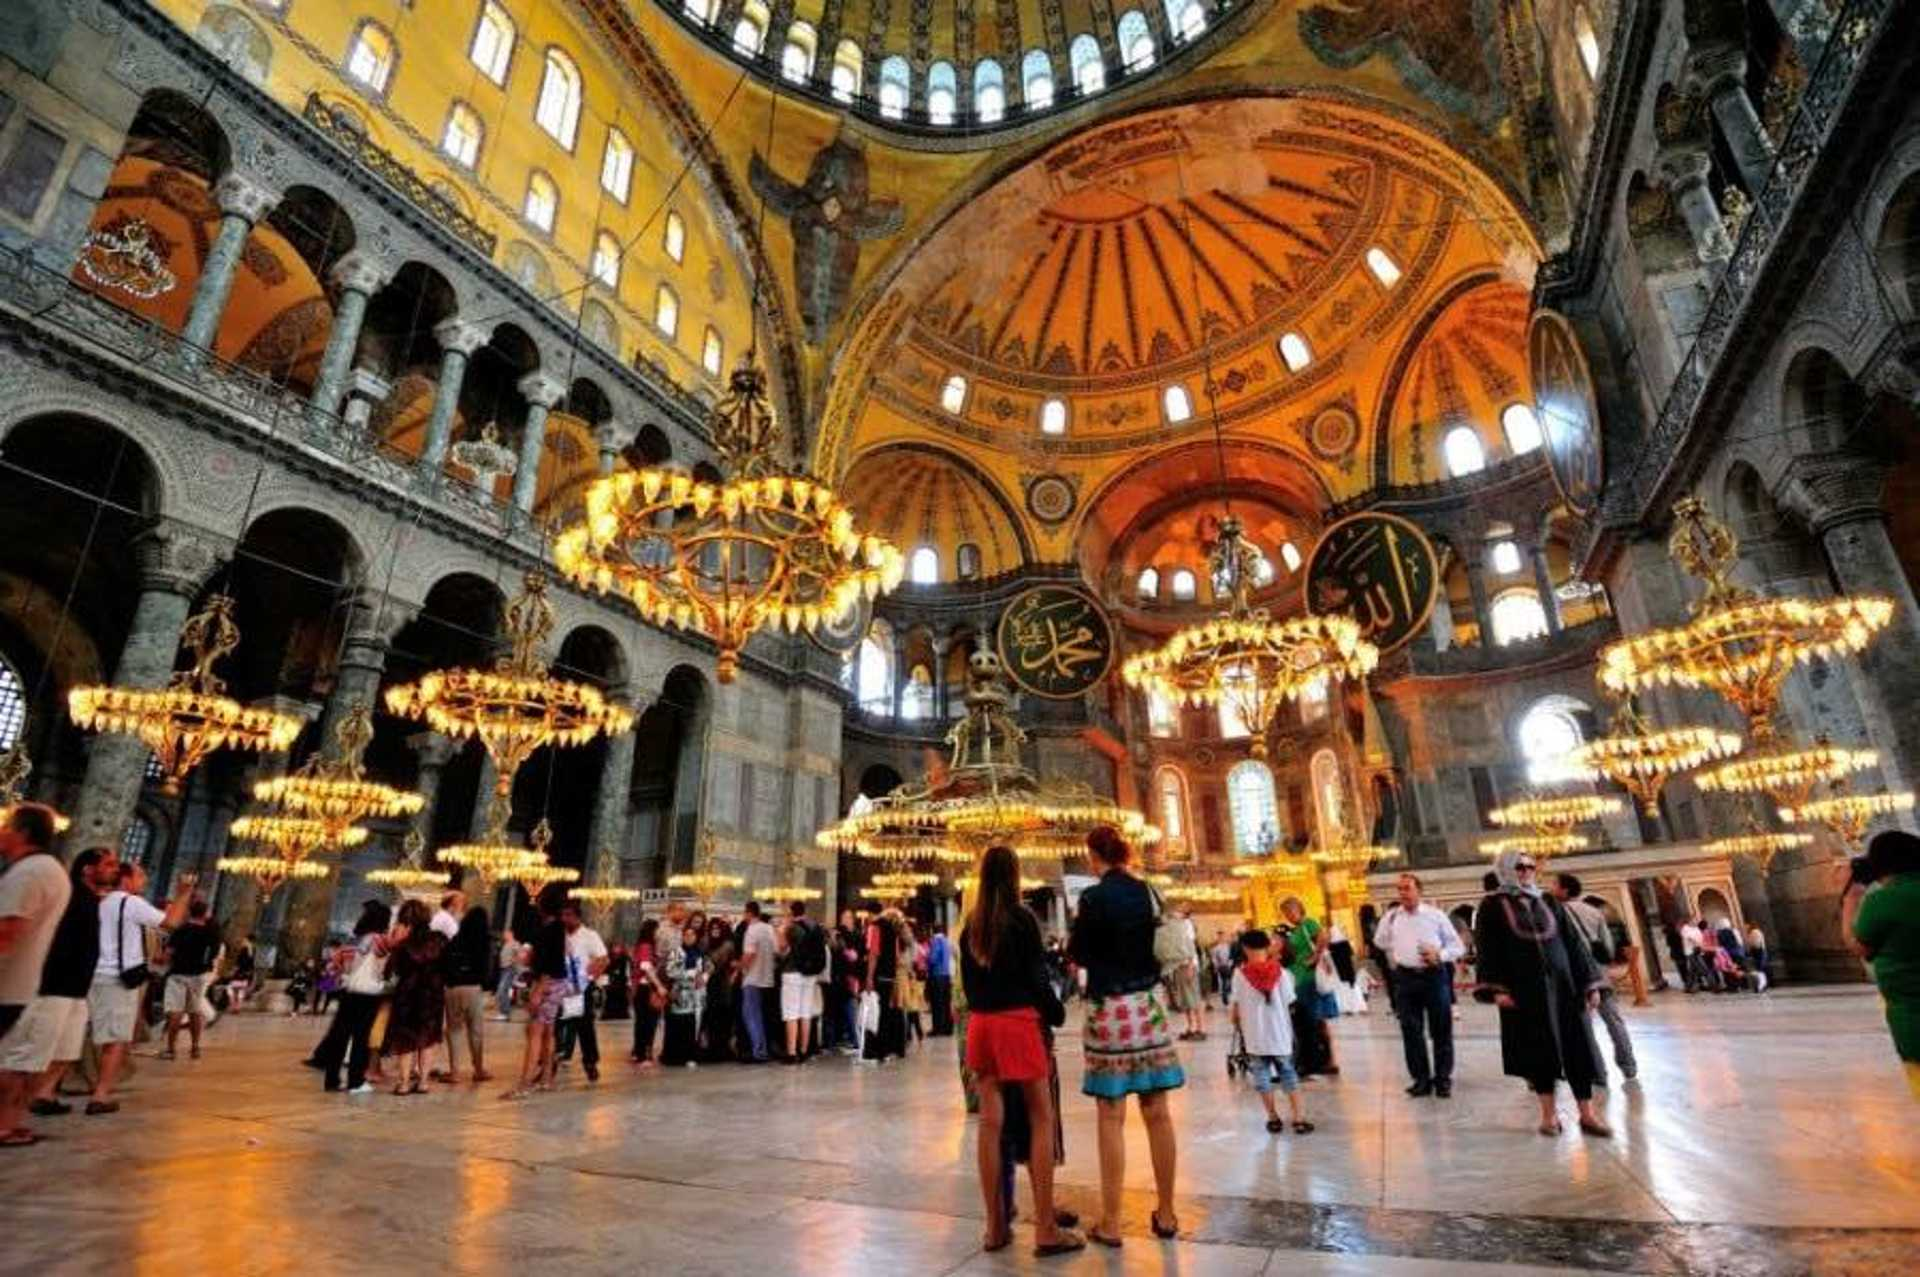 Take a moment to appreciate the beauty of Ayasofya